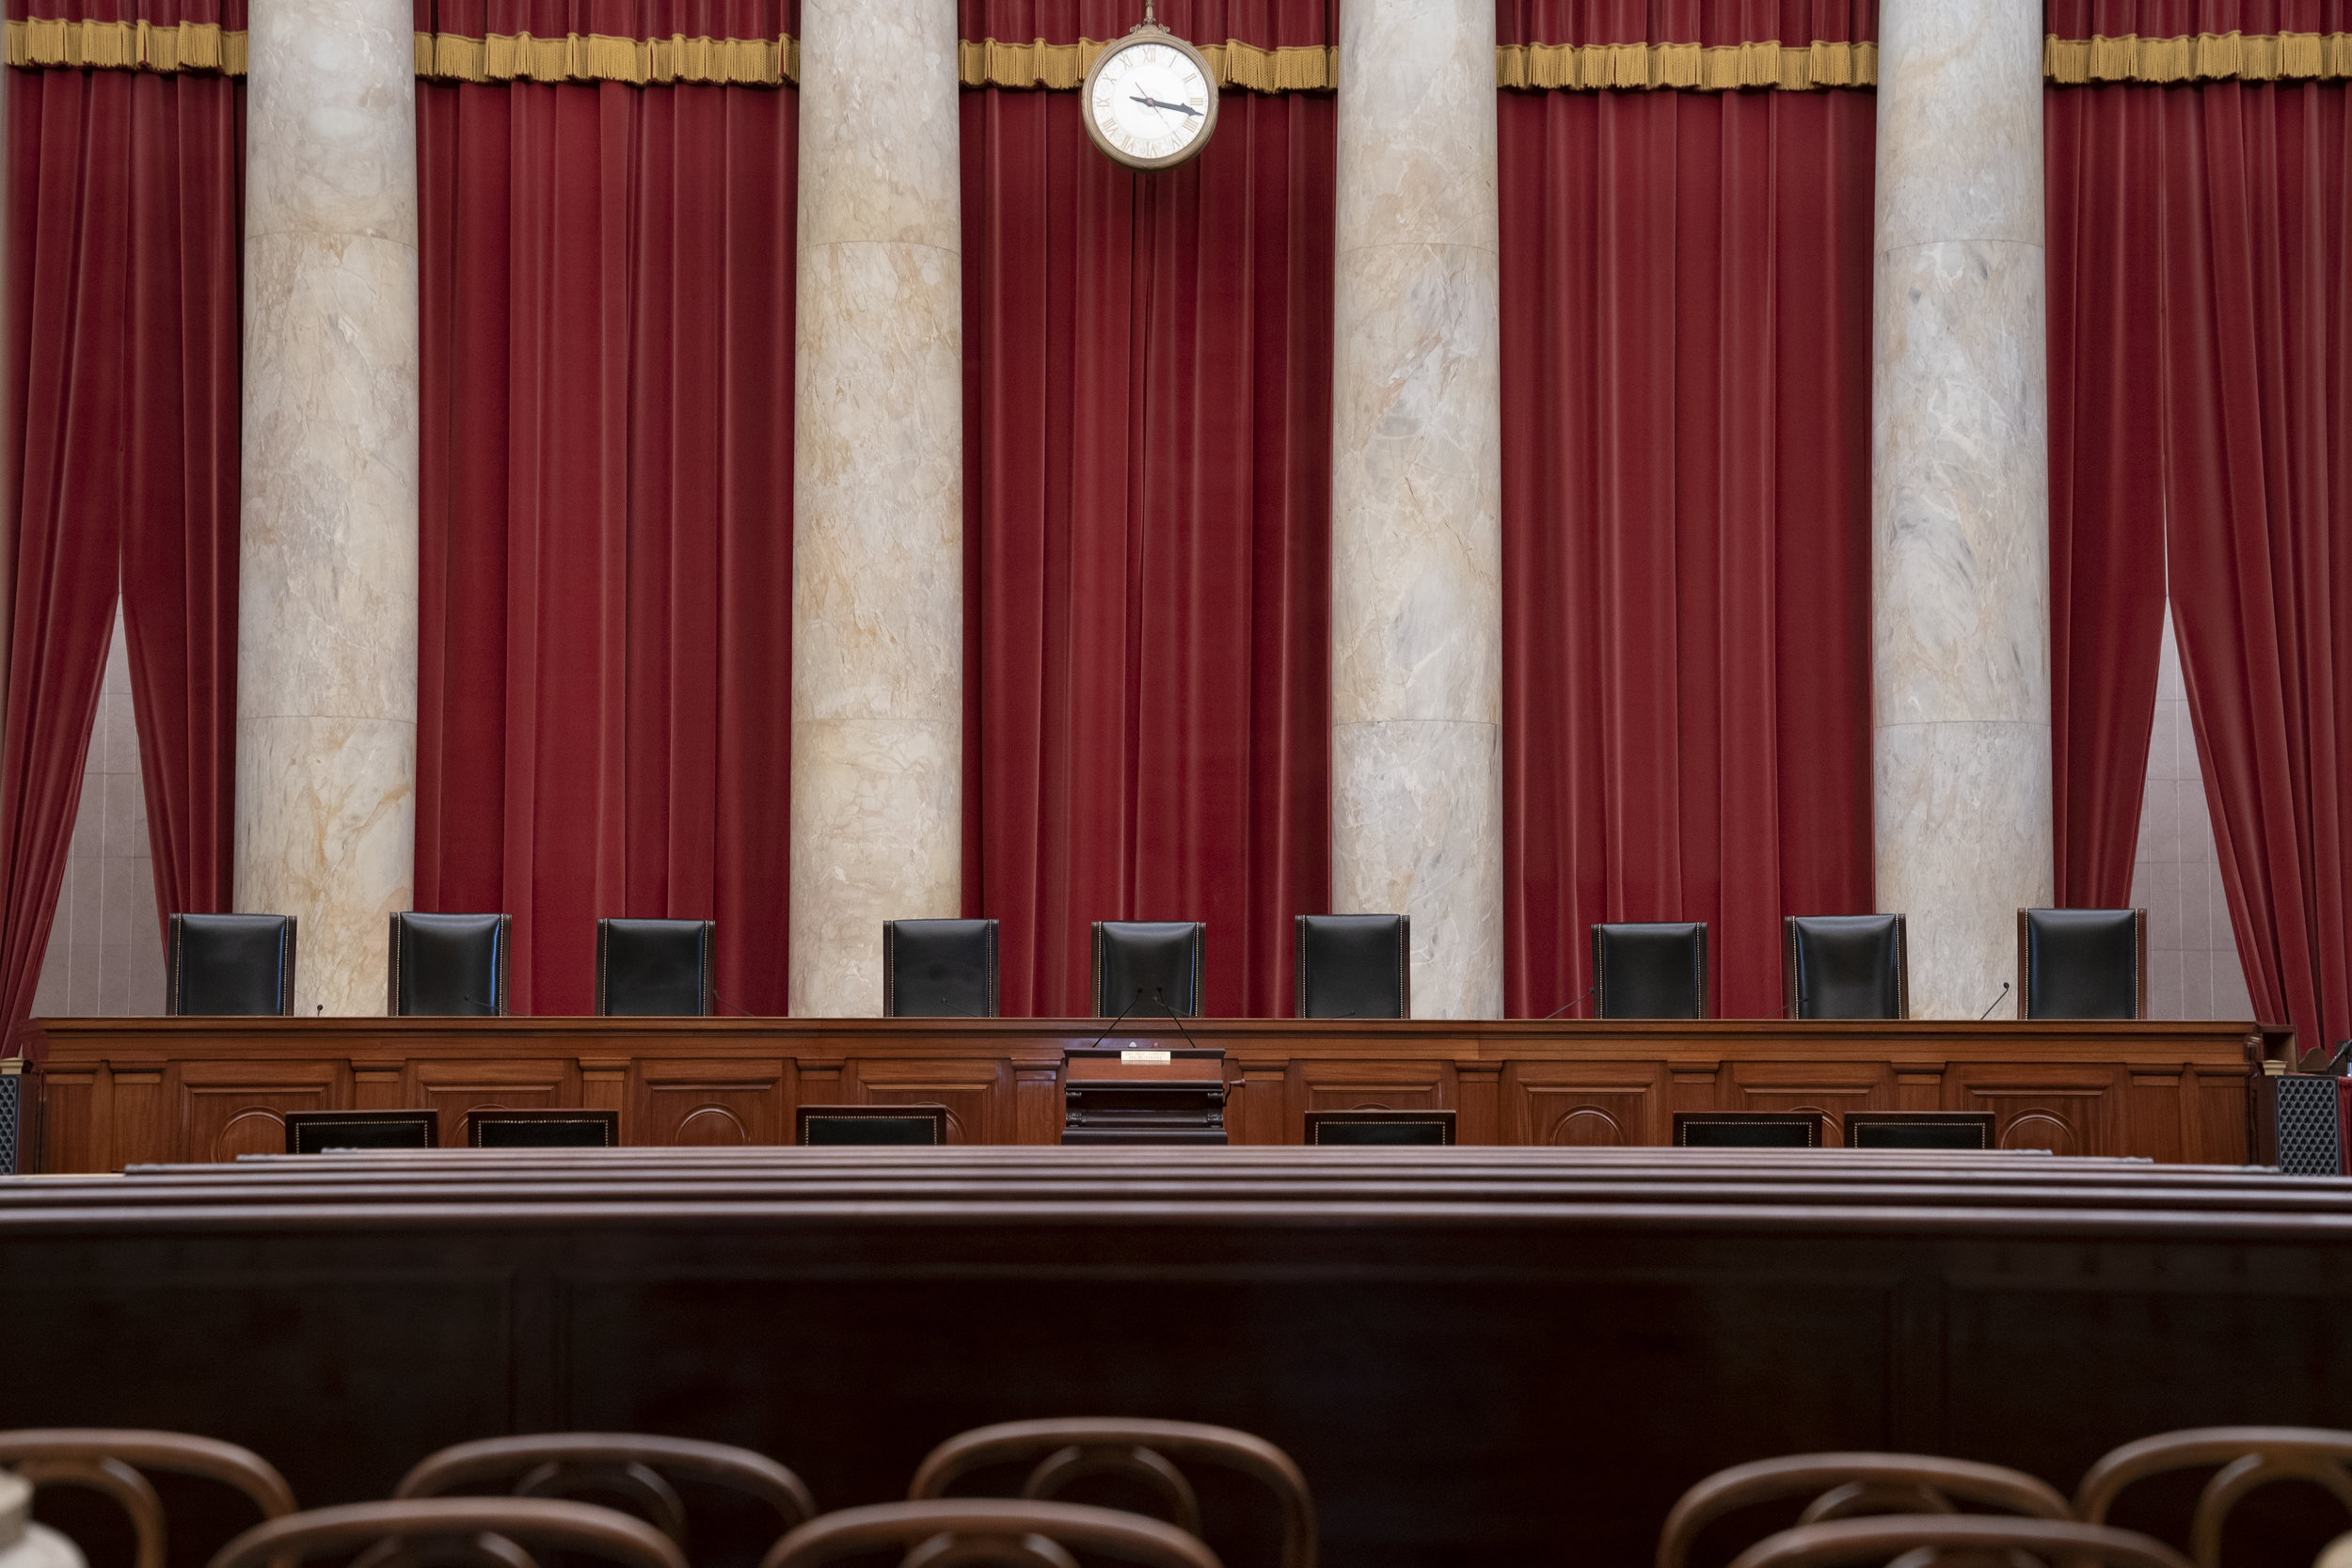 In this June 24, 2019 file photo, the empty courtroom is seen at the U.S. Supreme Court in Washington. (AP Photo/J. Scott Applewhite)